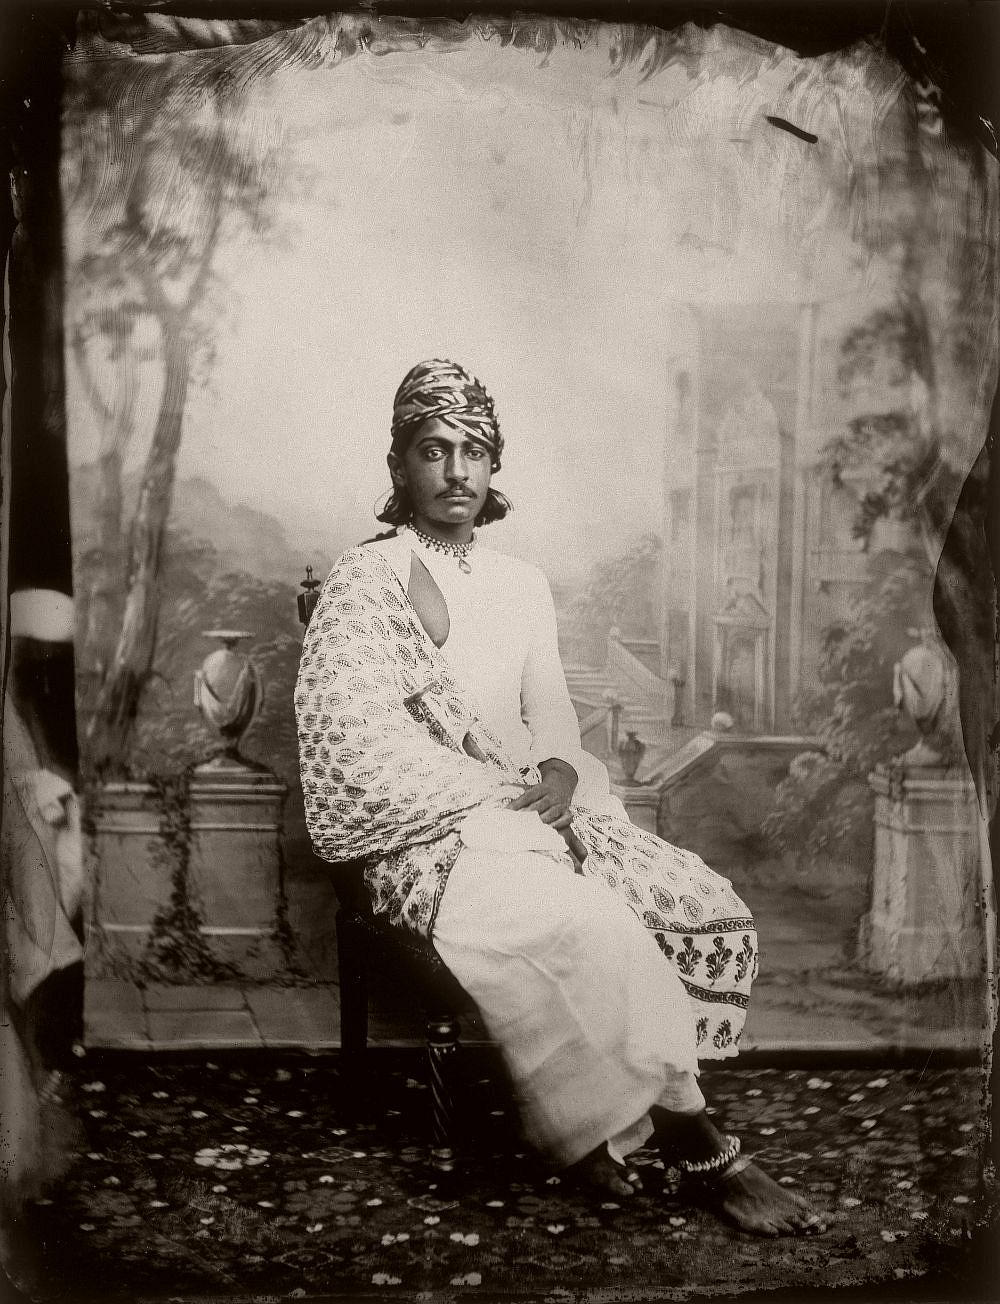 Portrait of a prince in the royal court of the palace of Jaipur, India, circa 1857. (Photo by Maharaja Ram Singh III/Alinari Archives, Florence/Alinari via Getty Images)